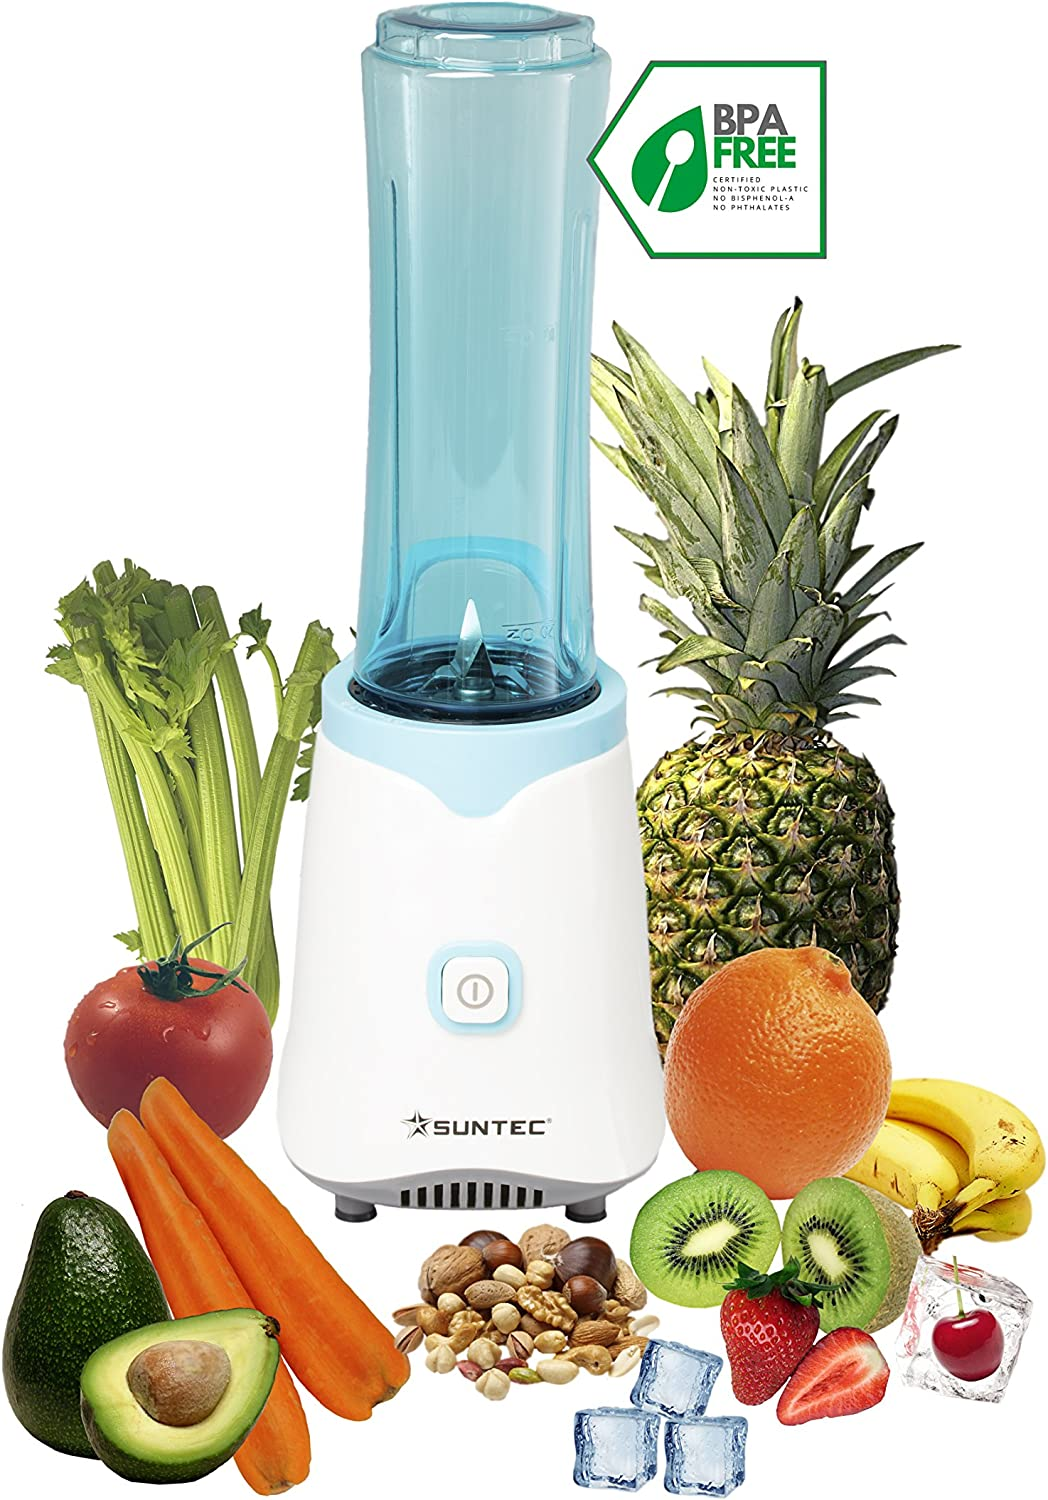 Suntec Wellness SMO-9943 Smoothie Maker, 150 W, turquesa: Amazon.es: Hogar